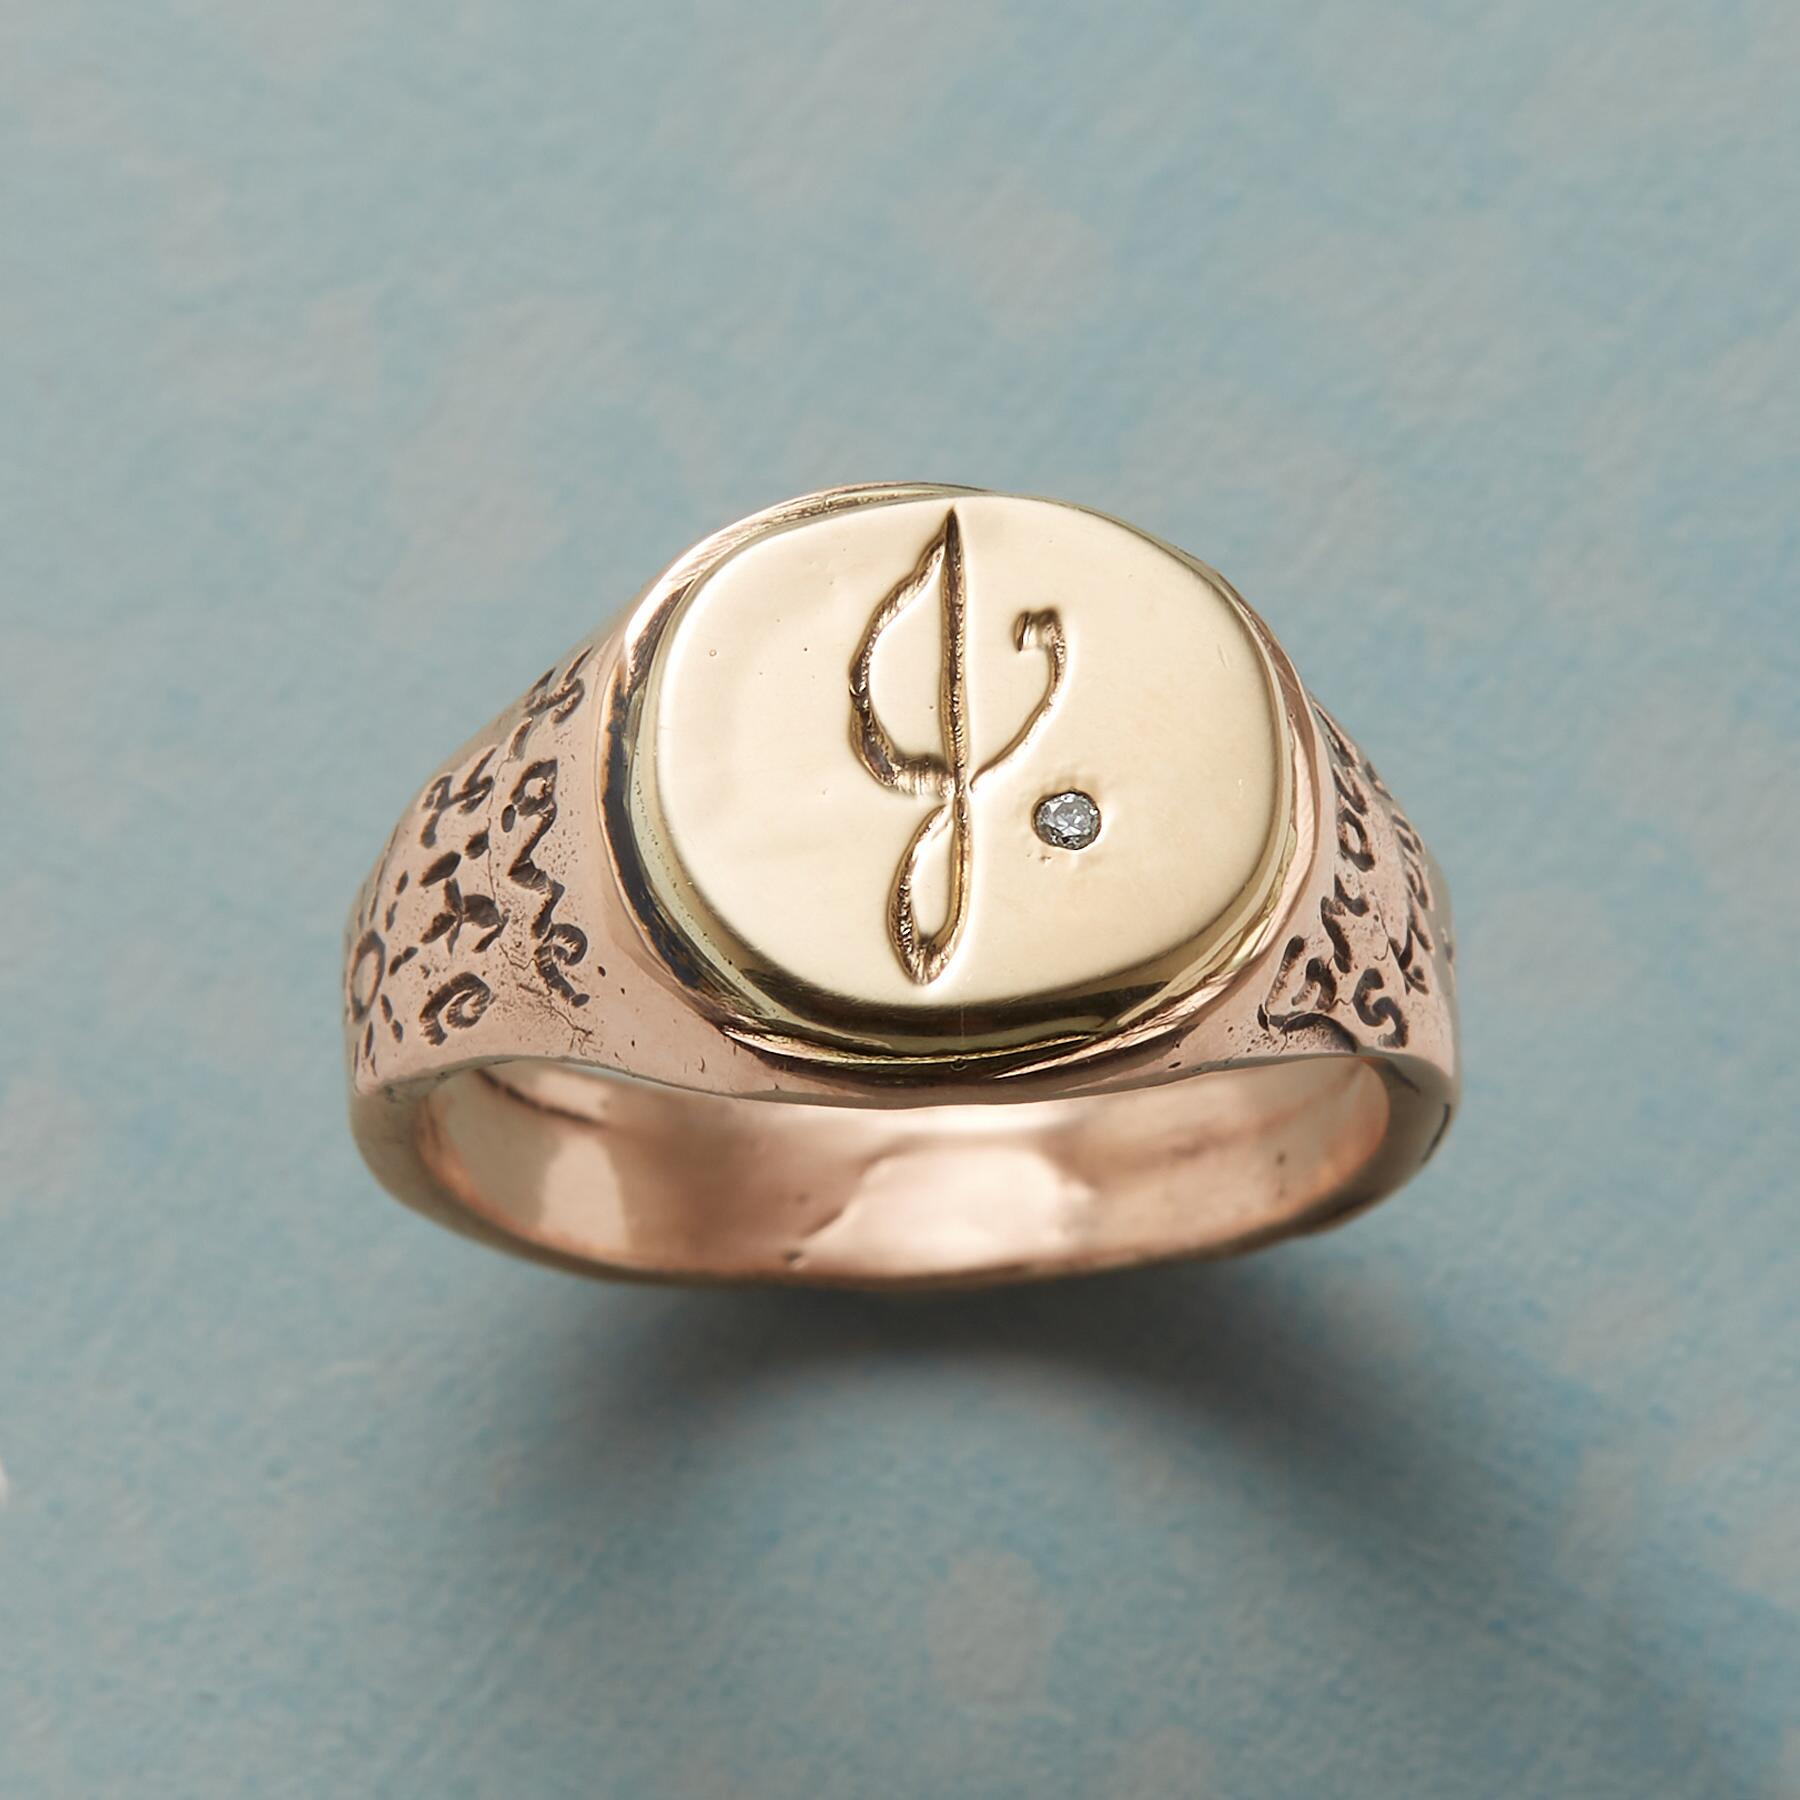 PERSONALIZED LIFE AFFIRMING RING: View 1